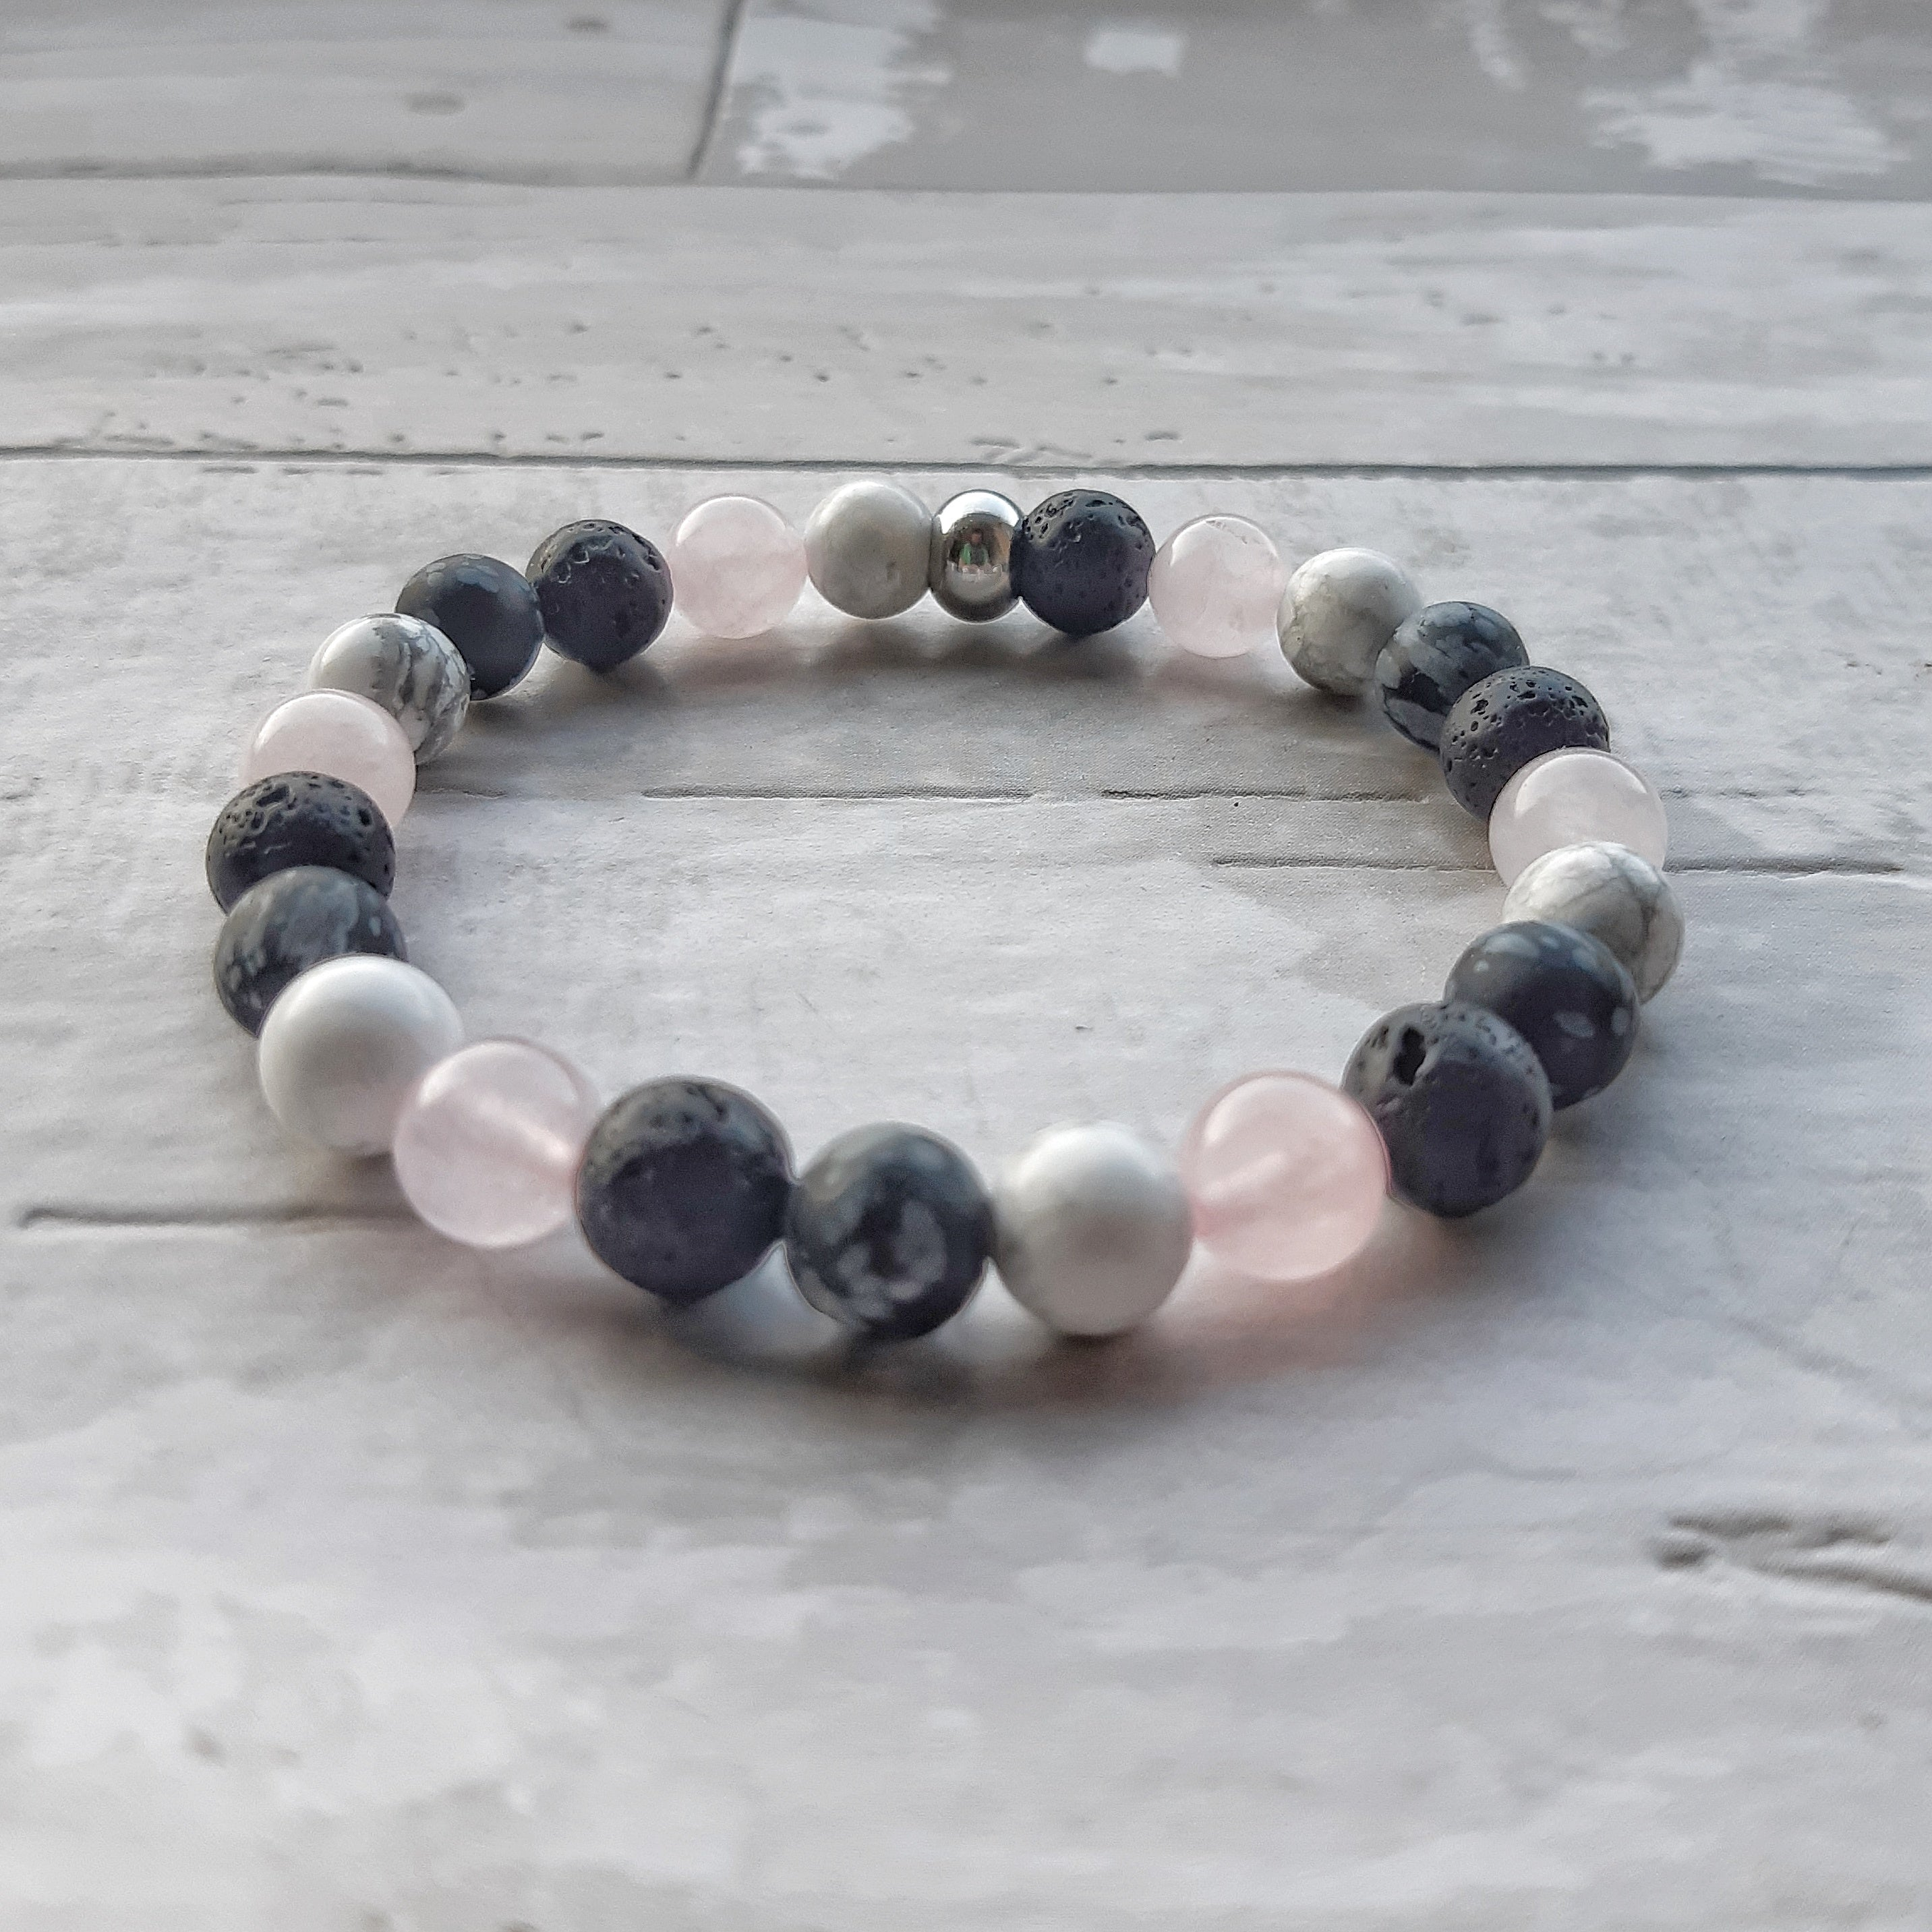 Mixed Gemstone Diffuser Bracelet- Rose Quartz, Howlite and Snowflake Obsidian